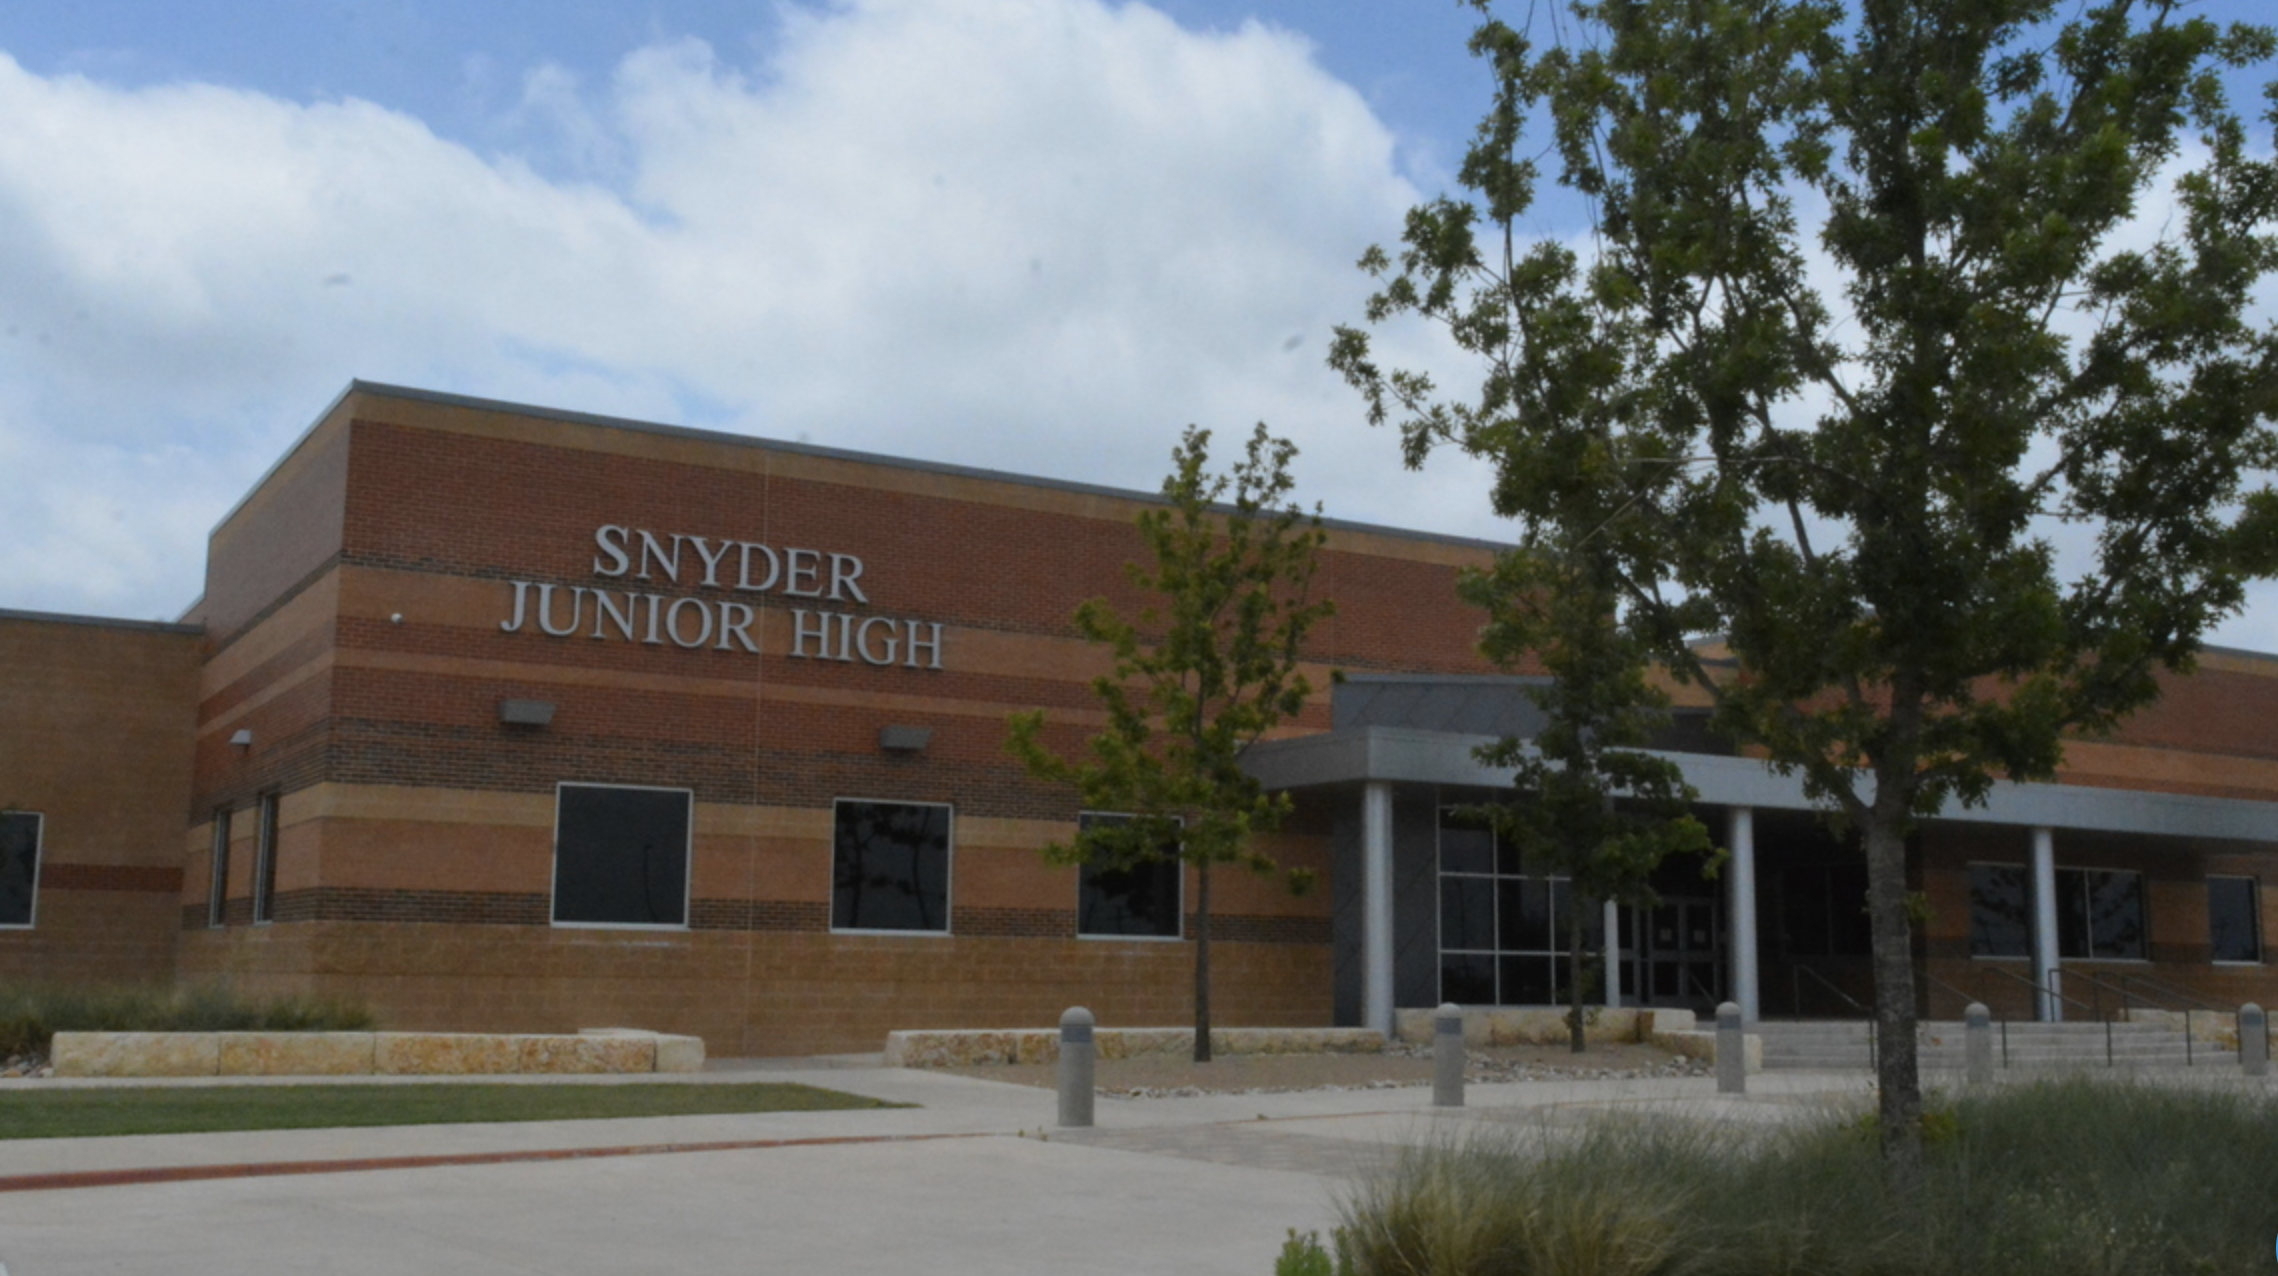 Snyder Junior High 3806 37th, Snyder, TX